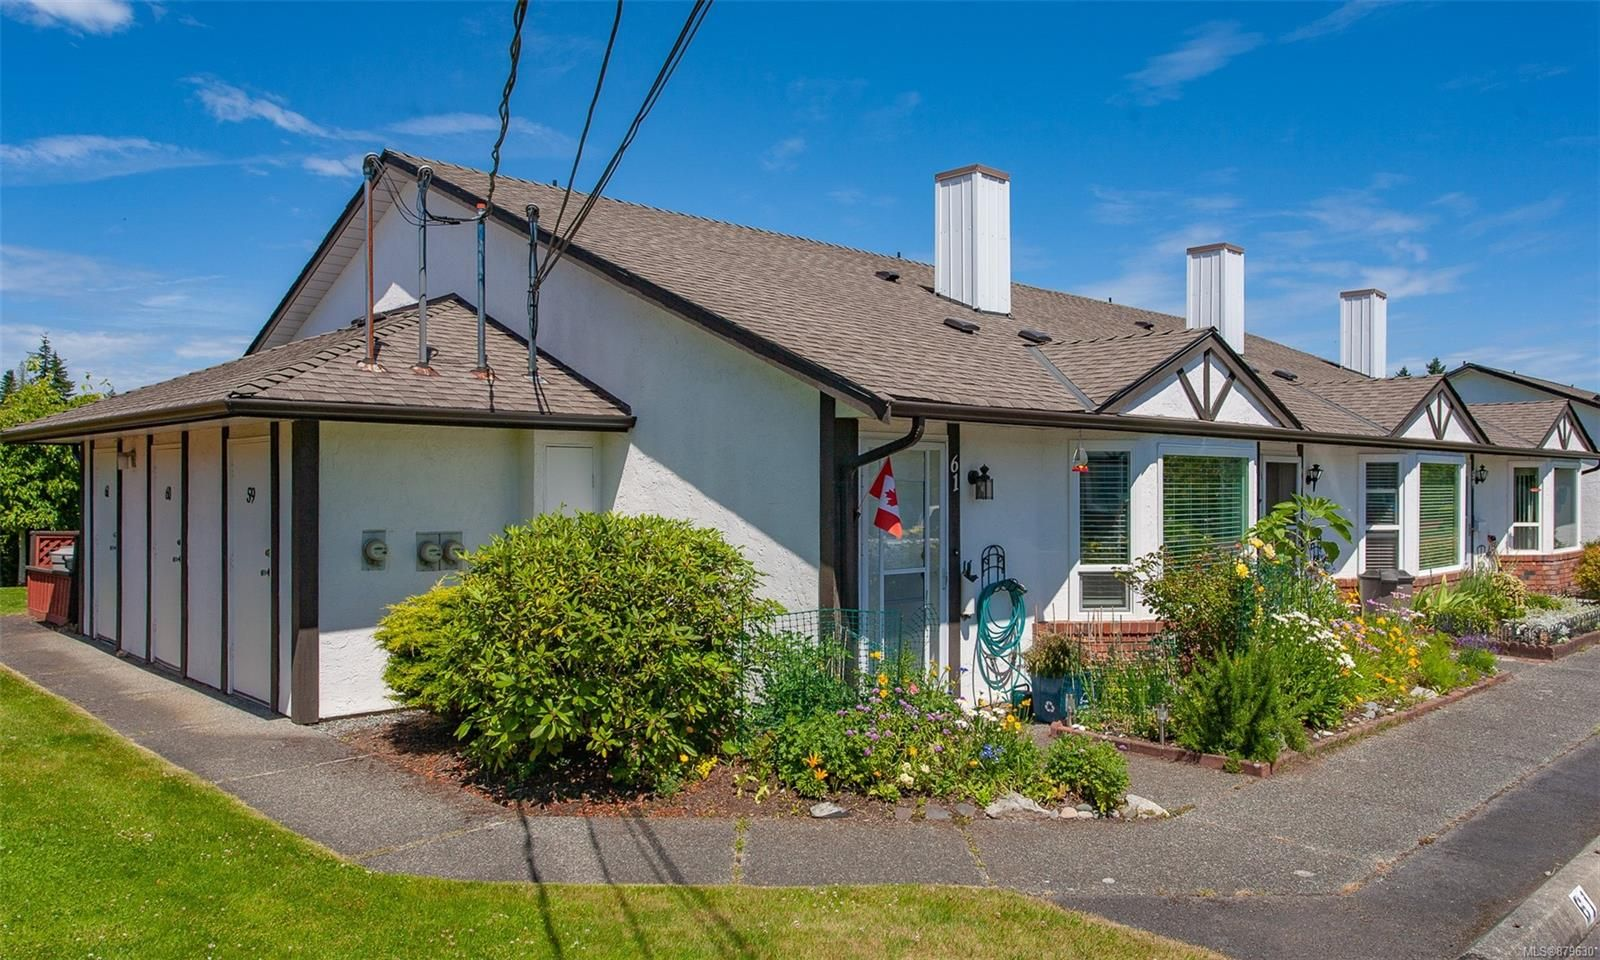 Main Photo: 60 120 N Finholm St in : PQ Parksville Row/Townhouse for sale (Parksville/Qualicum)  : MLS®# 879630